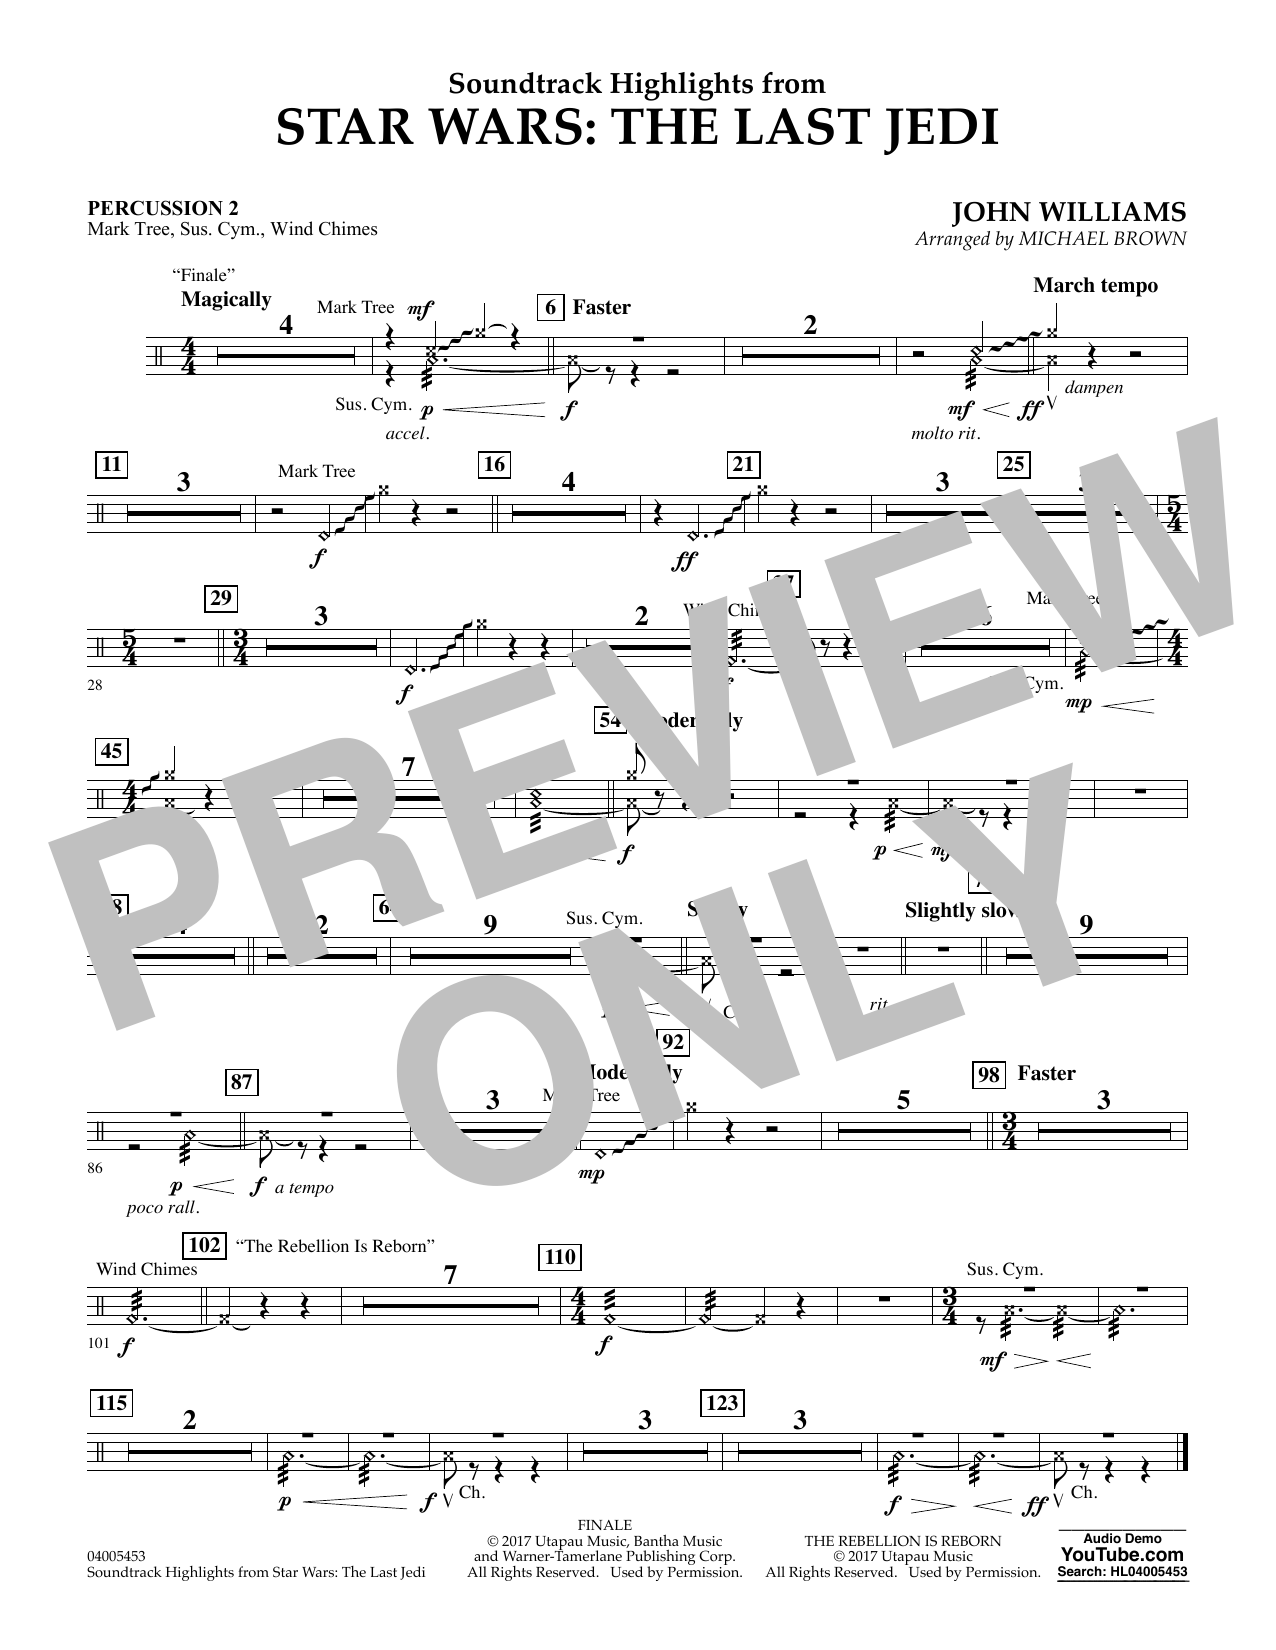 Michael Brown Soundtrack Highlights from Star Wars: The Last Jedi - Percussion 2 sheet music notes and chords. Download Printable PDF.